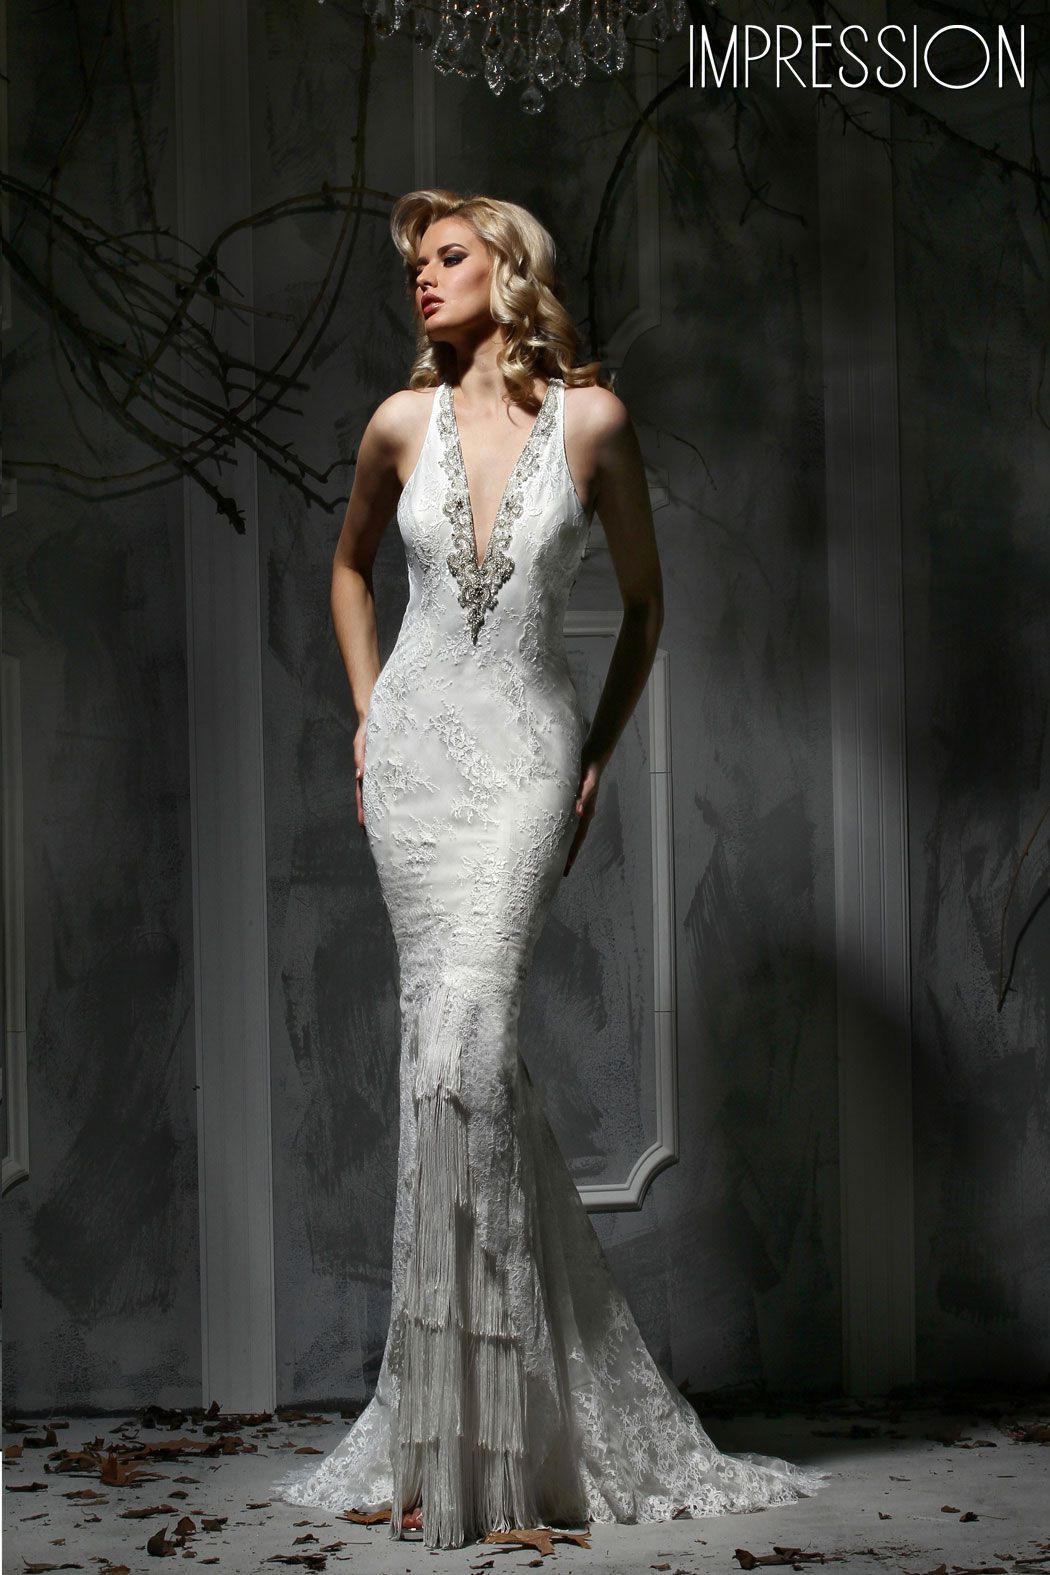 Cut out lace wedding dress  This stunning wedding dress in lace brings the ucva va voomud factor